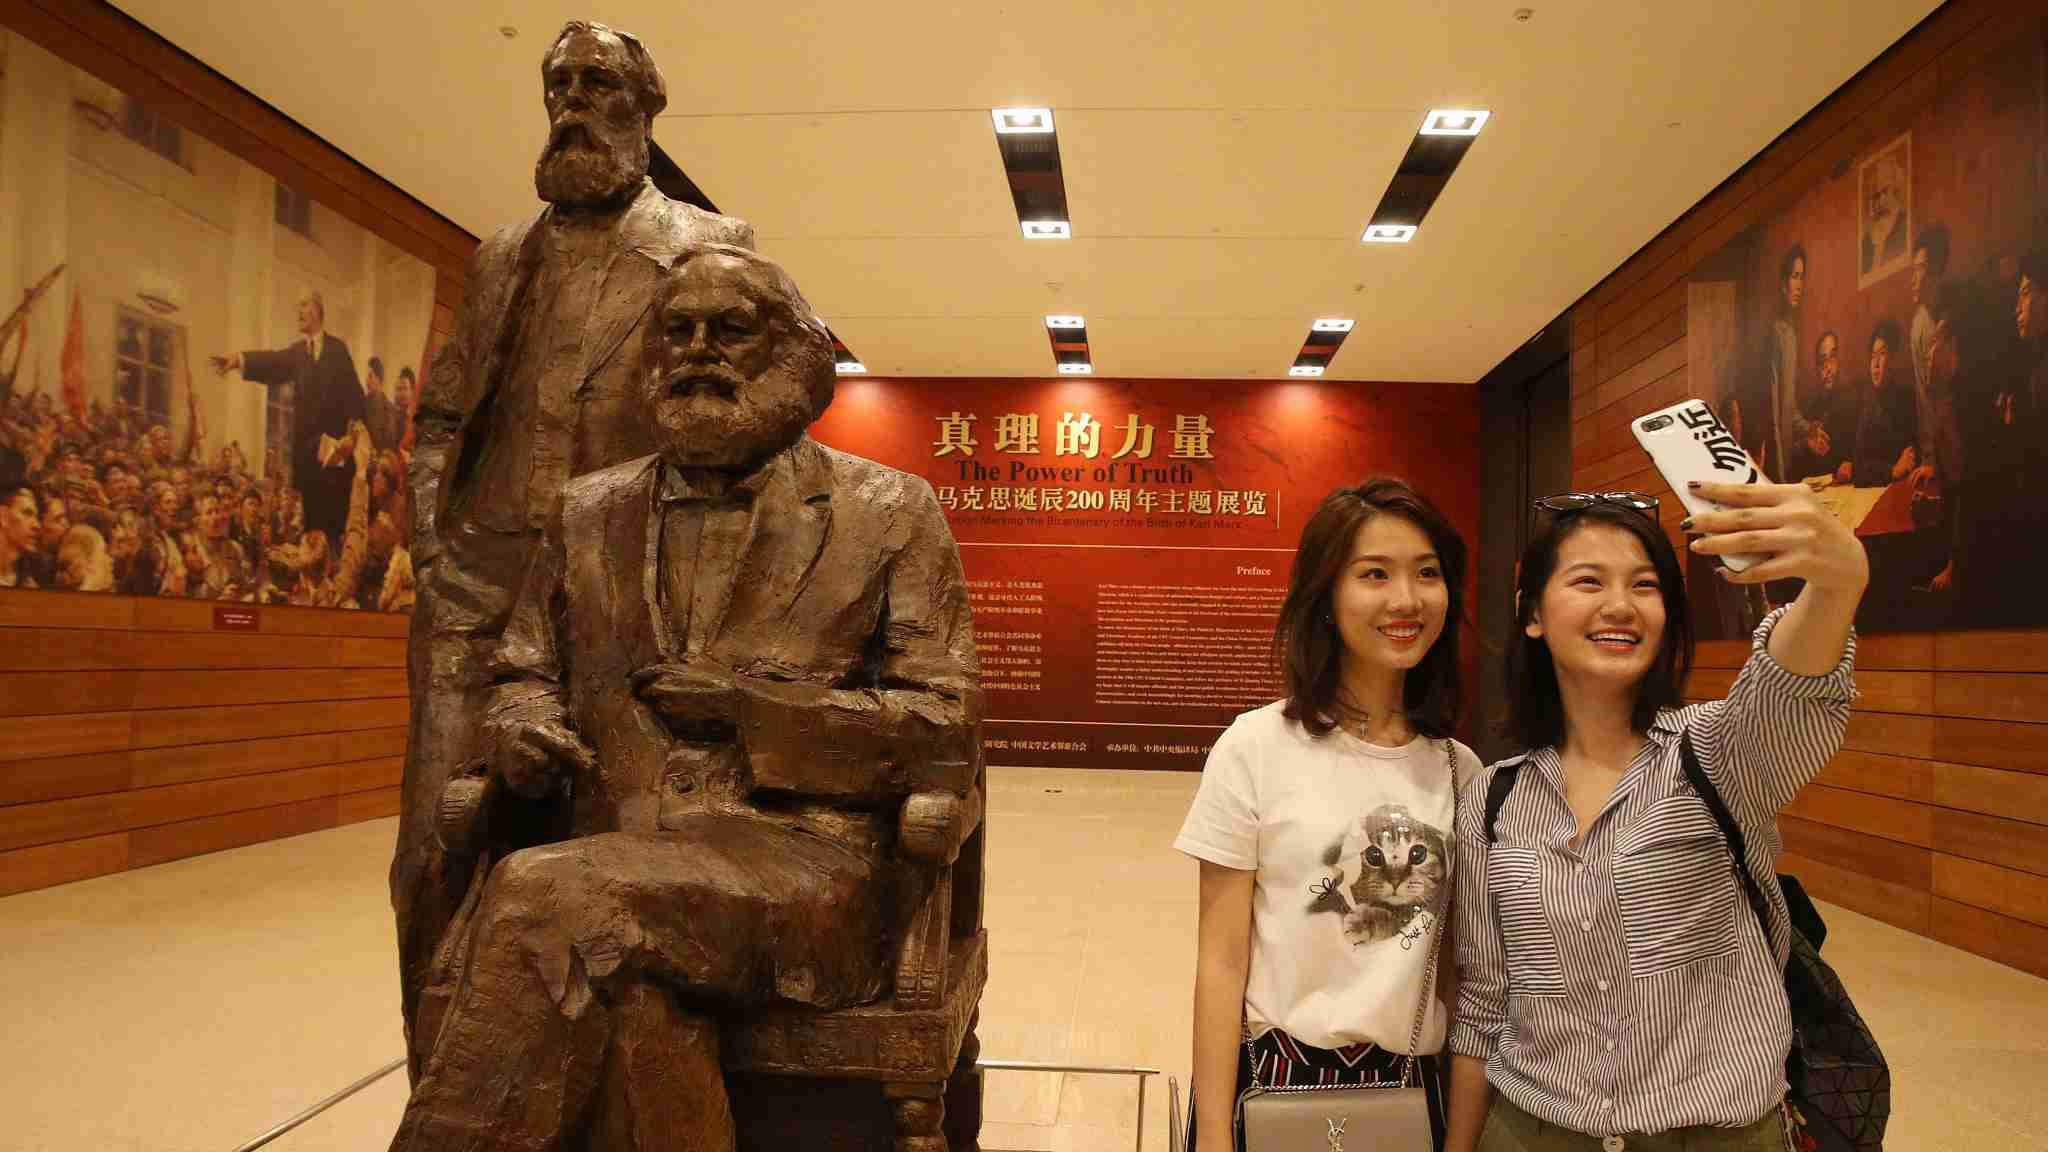 Holding up the spirit of Marxism in China